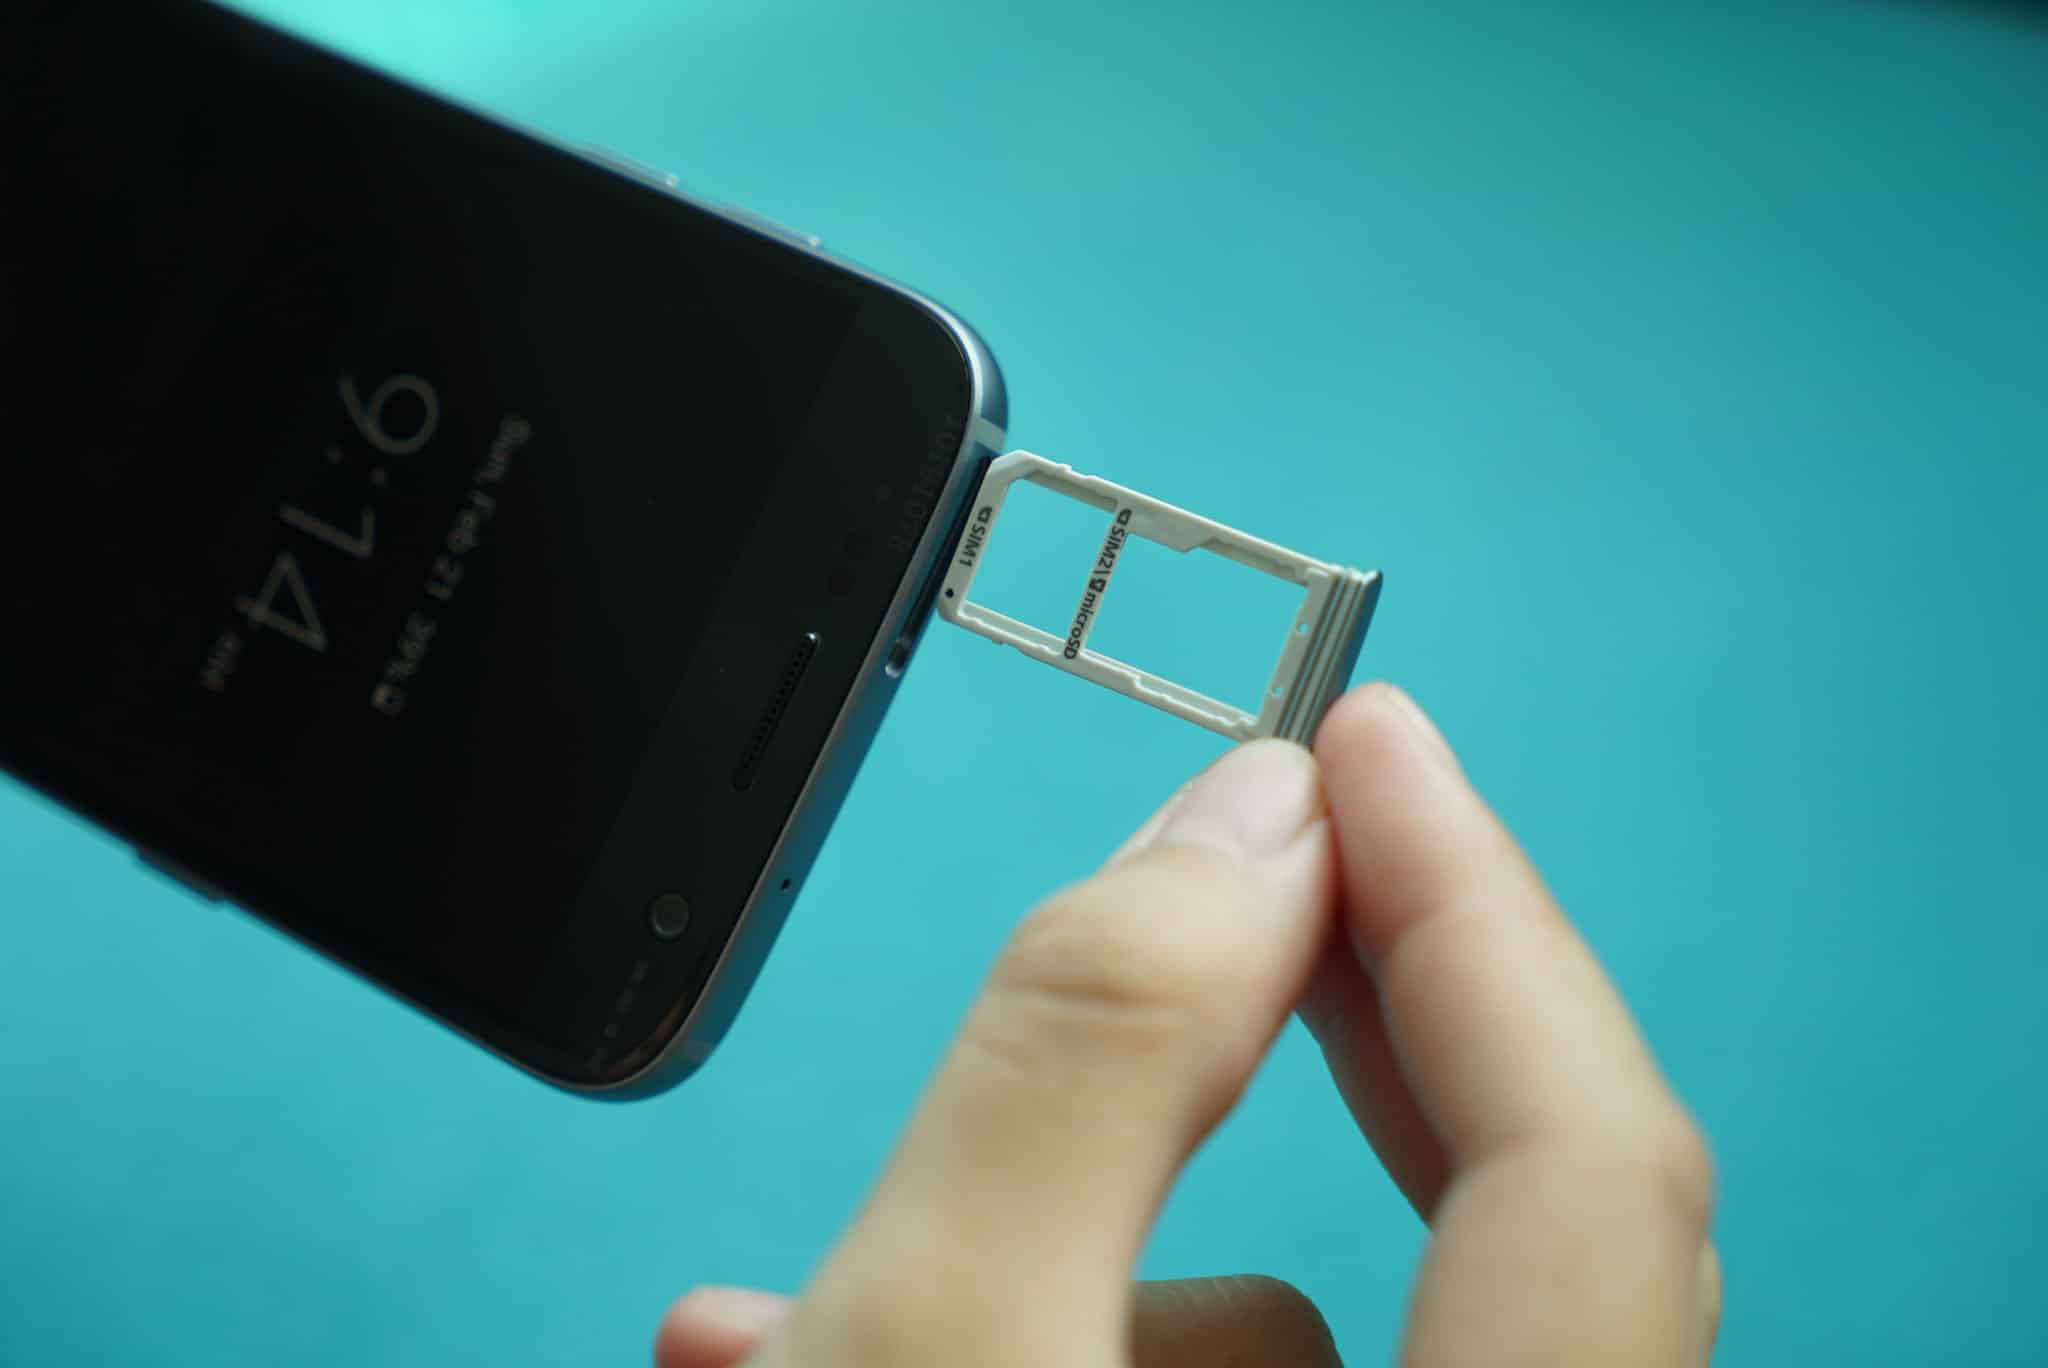 The hybrid SIM tray on the S7 and S7 Edge takes two nano SIM cards or one SIM and on microSD card.